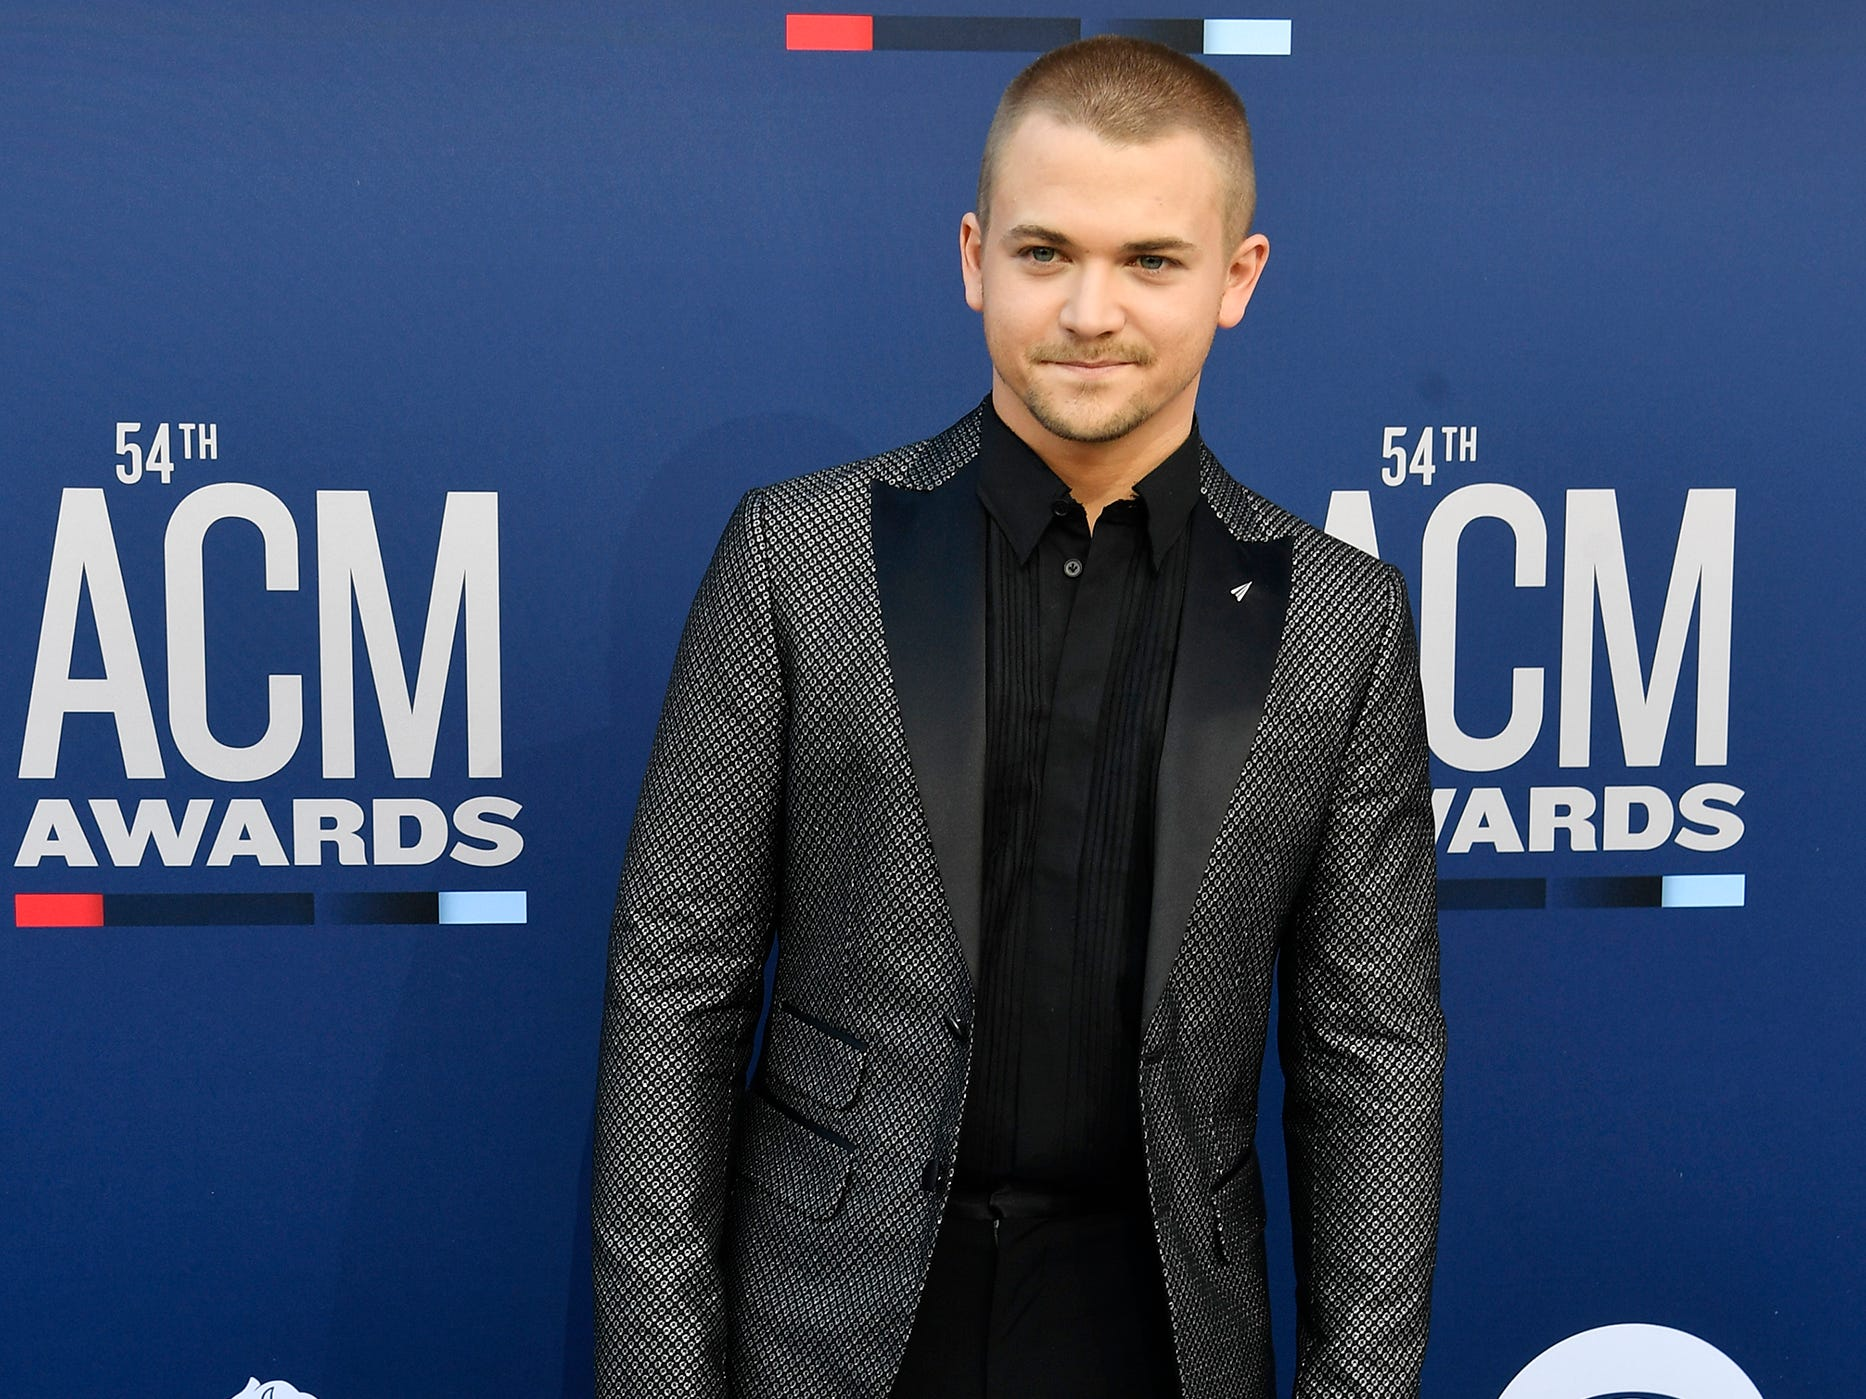 Hunter Hayes walks the red carpet at the 54TH Academy of Country Music Awards Sunday, April 7, 2019, in Las Vegas, Nev.